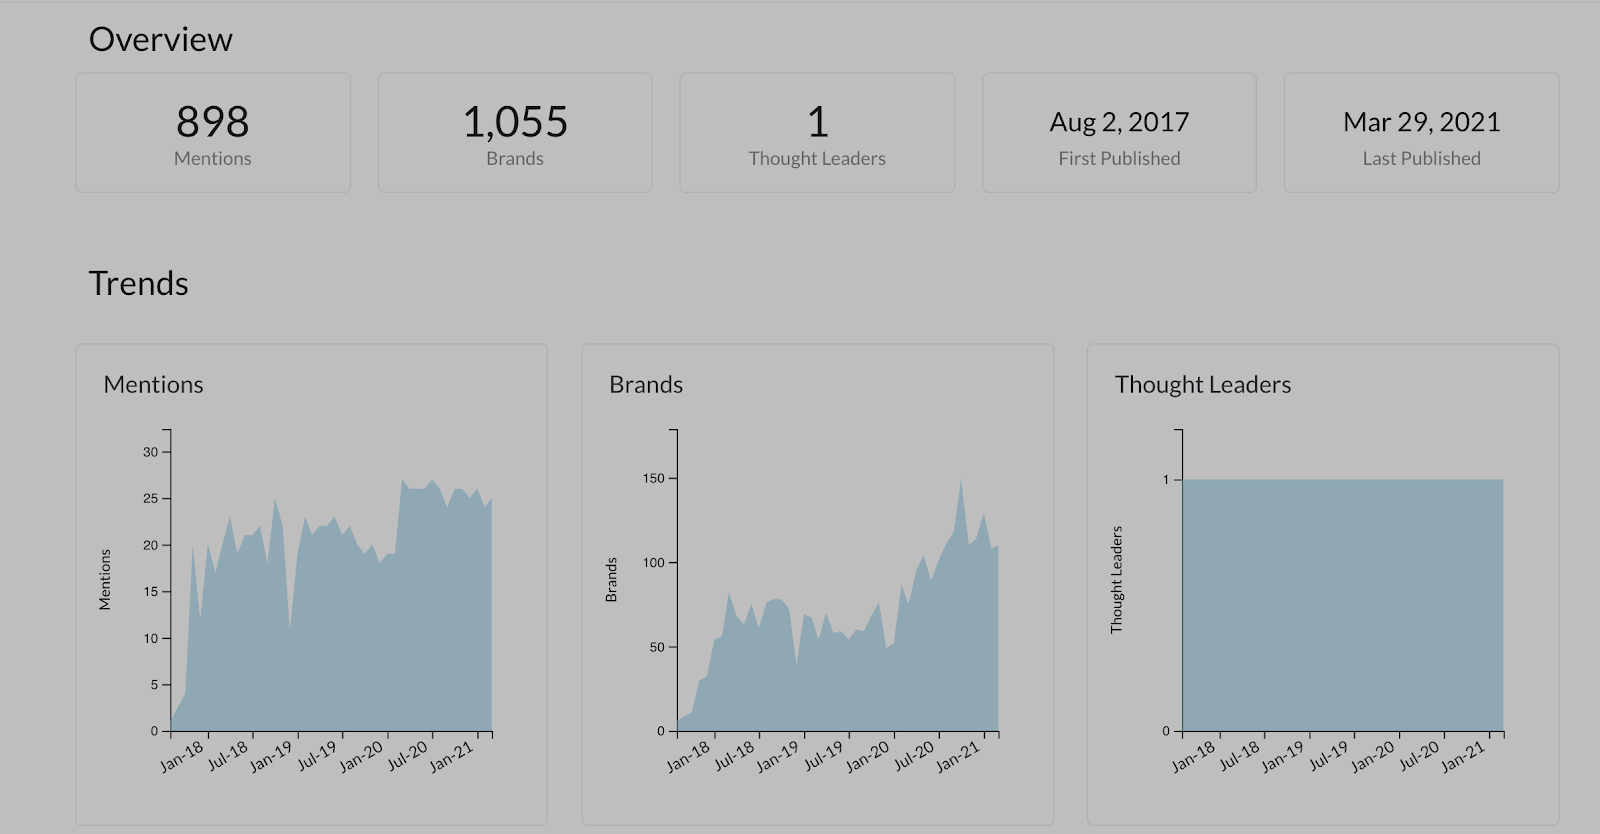 The Hustle newsletter content data